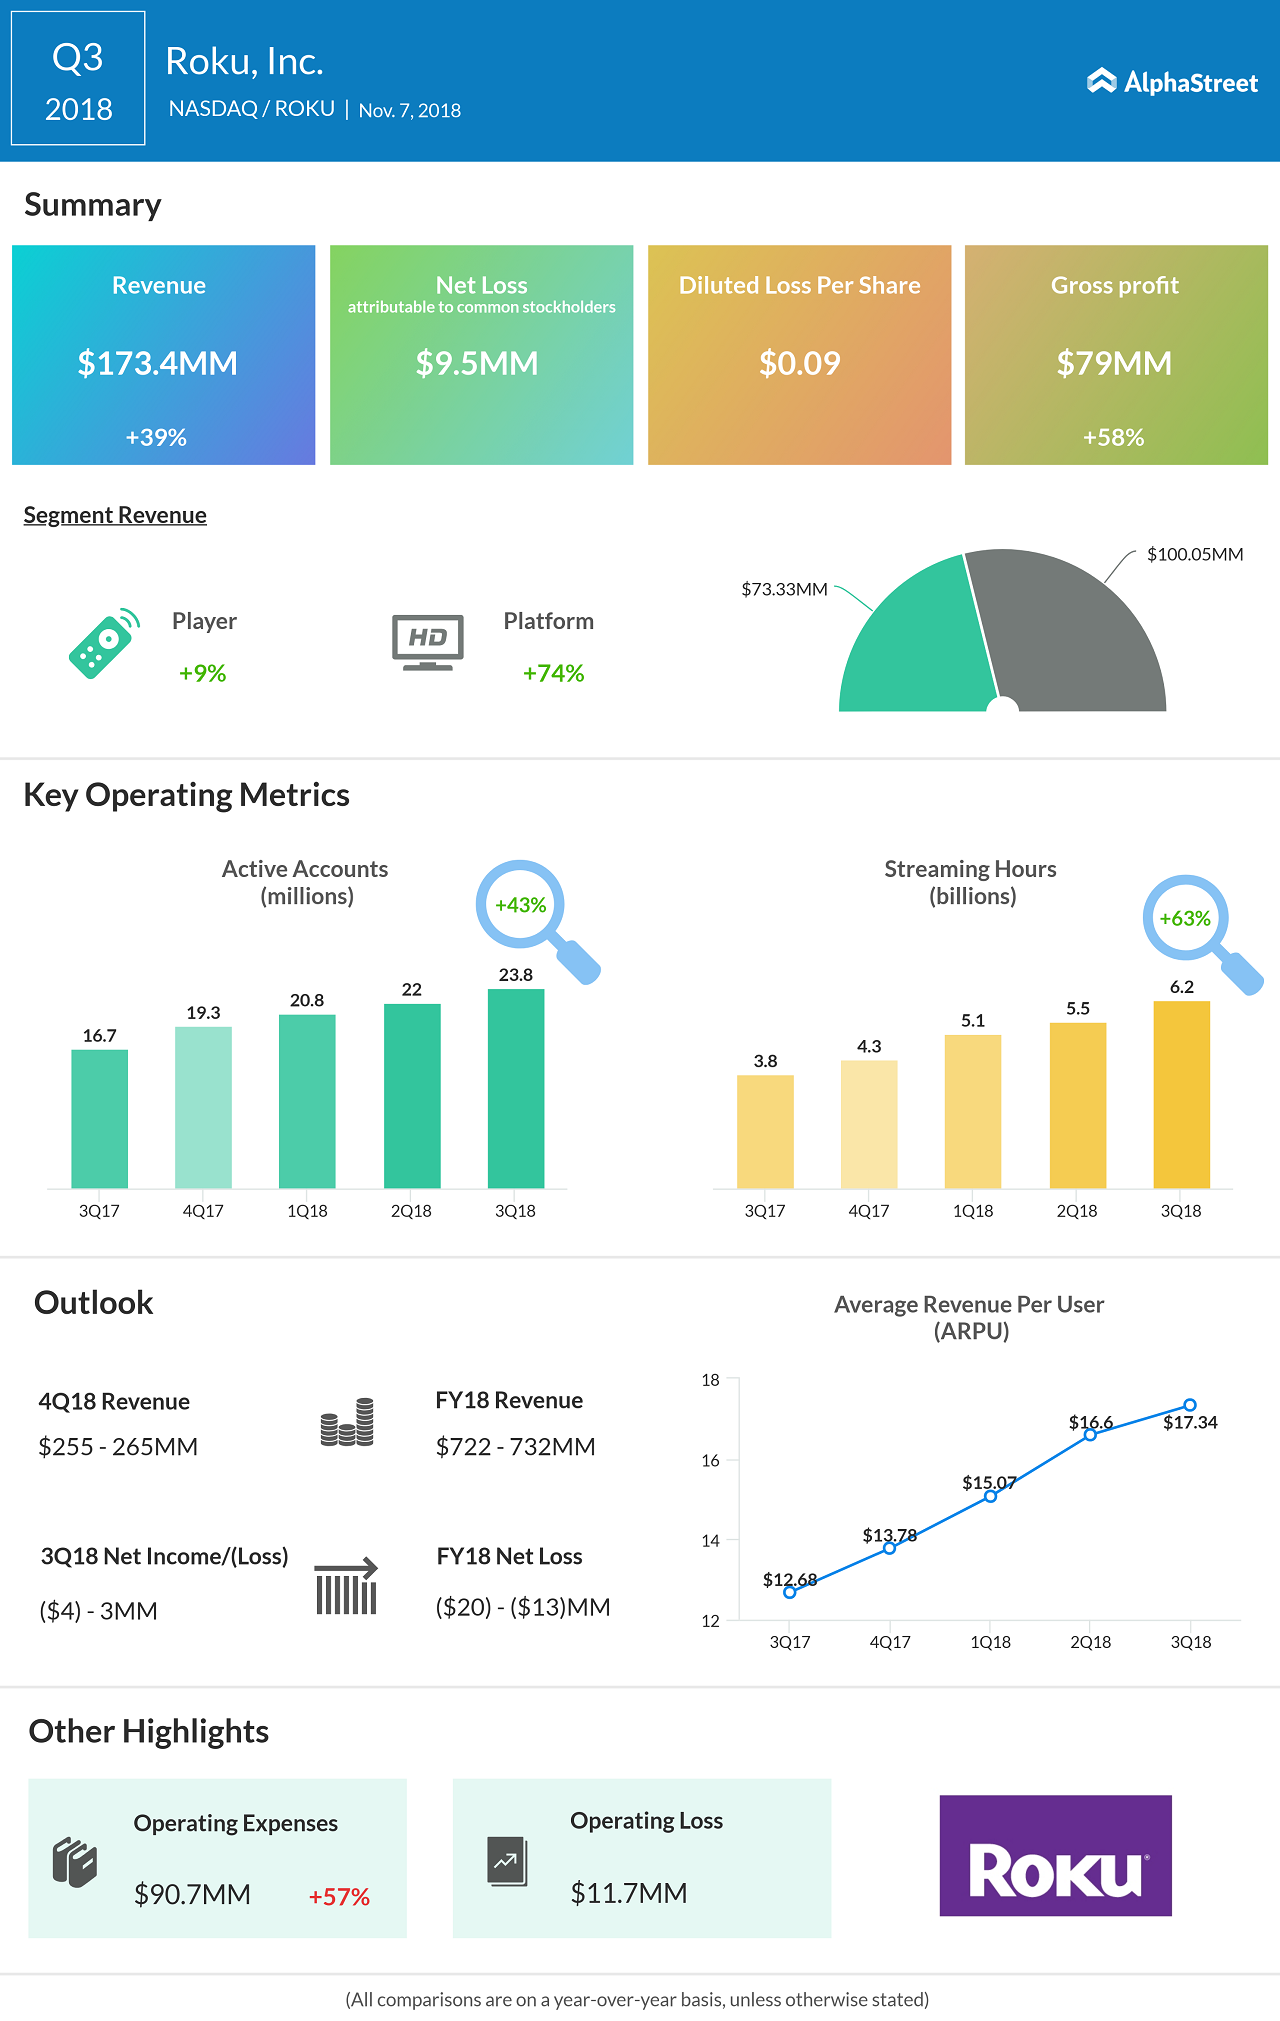 Roku Inc. Q3 2018 earnings infographic